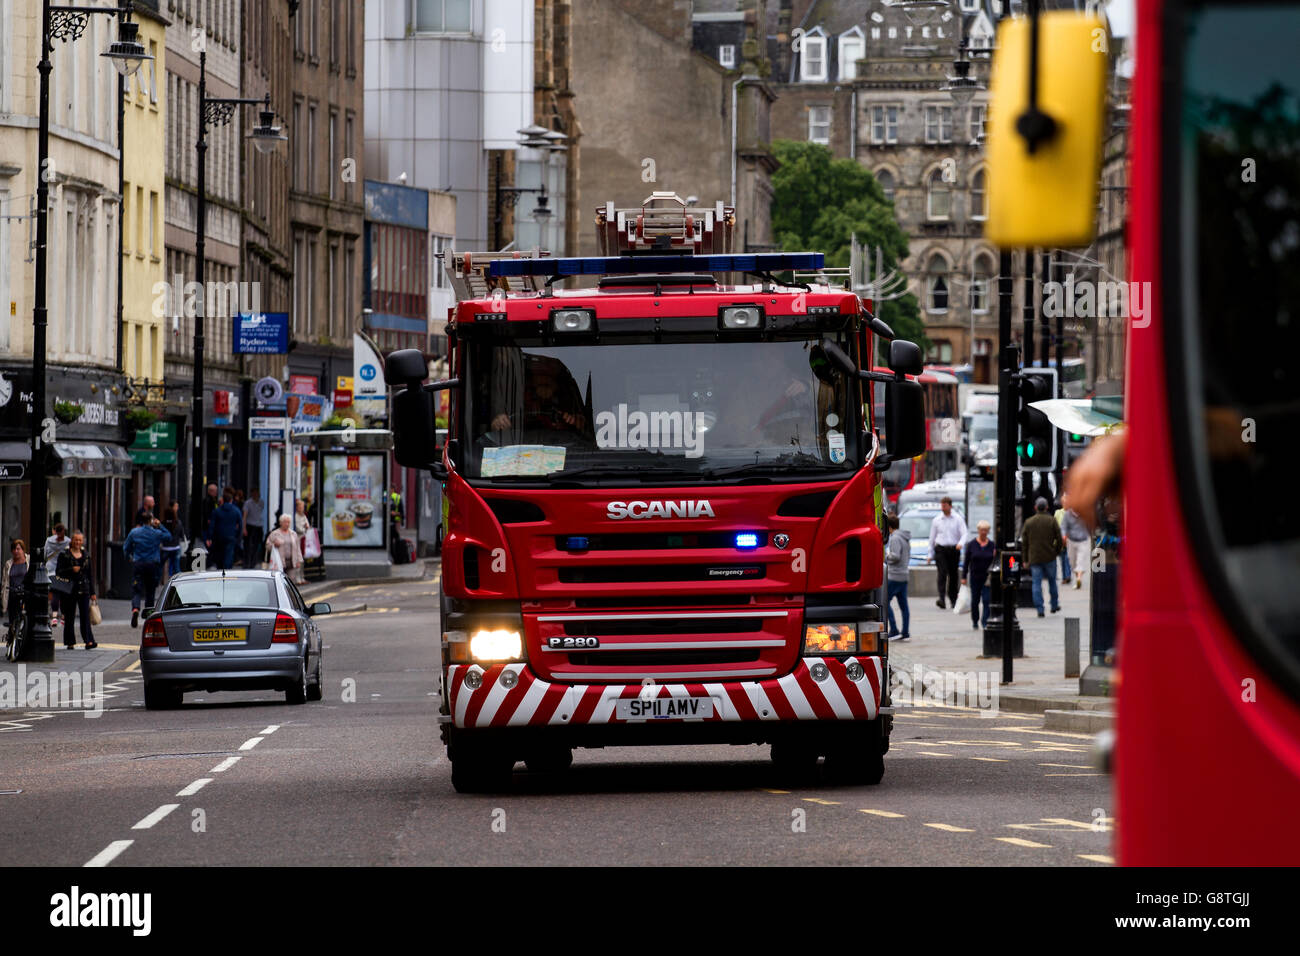 Scottish Fire And Rescue Service Fire Engine responding to a 999 Emergency call along the Overgate in central Dundee, - Stock Image